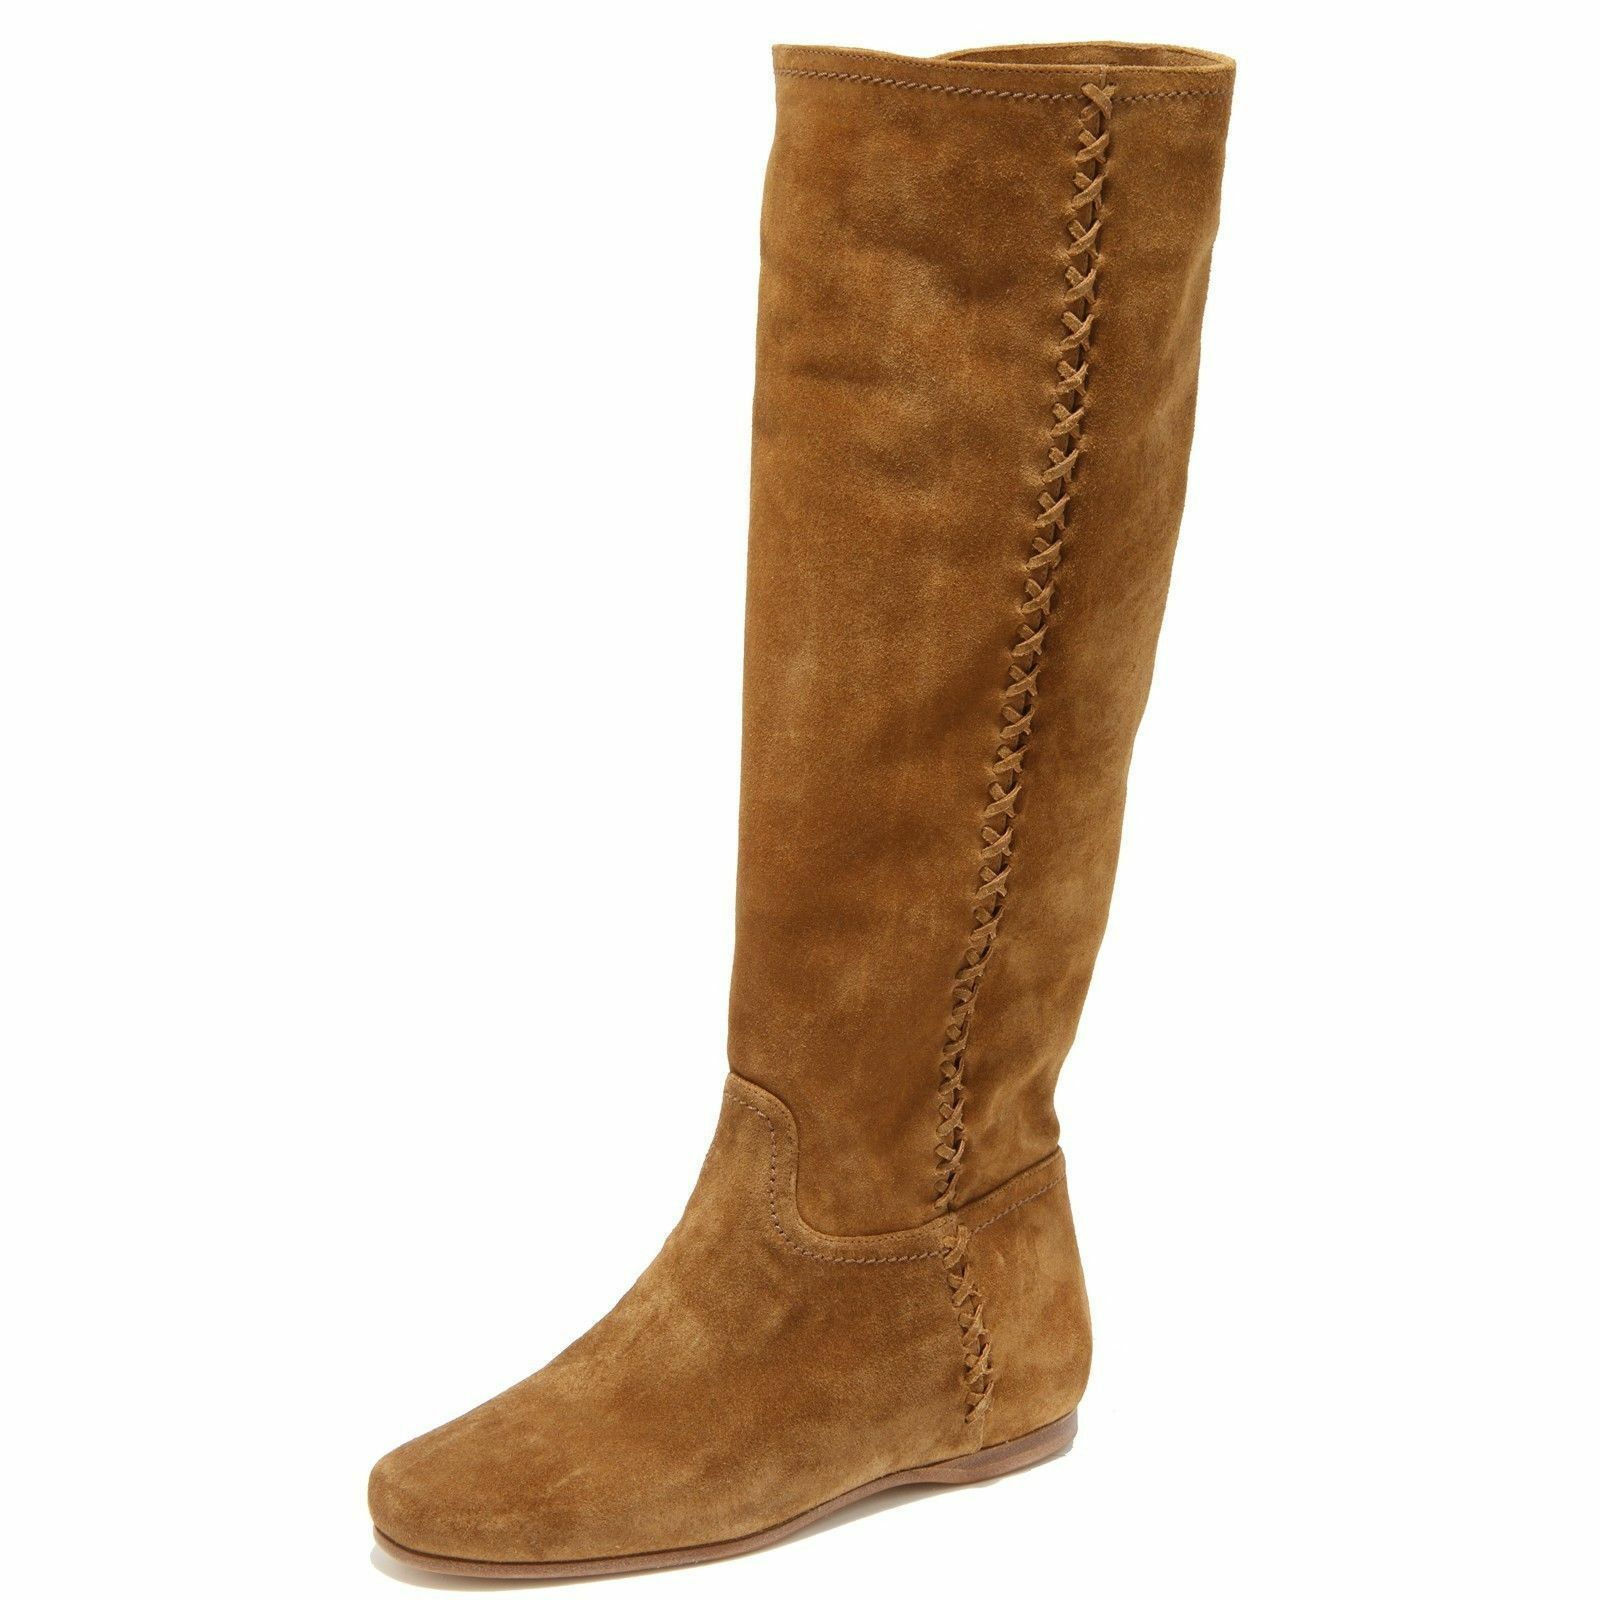 CAR SHOE by Prada Boots Suede caramel Size US 6 NEW/BOX